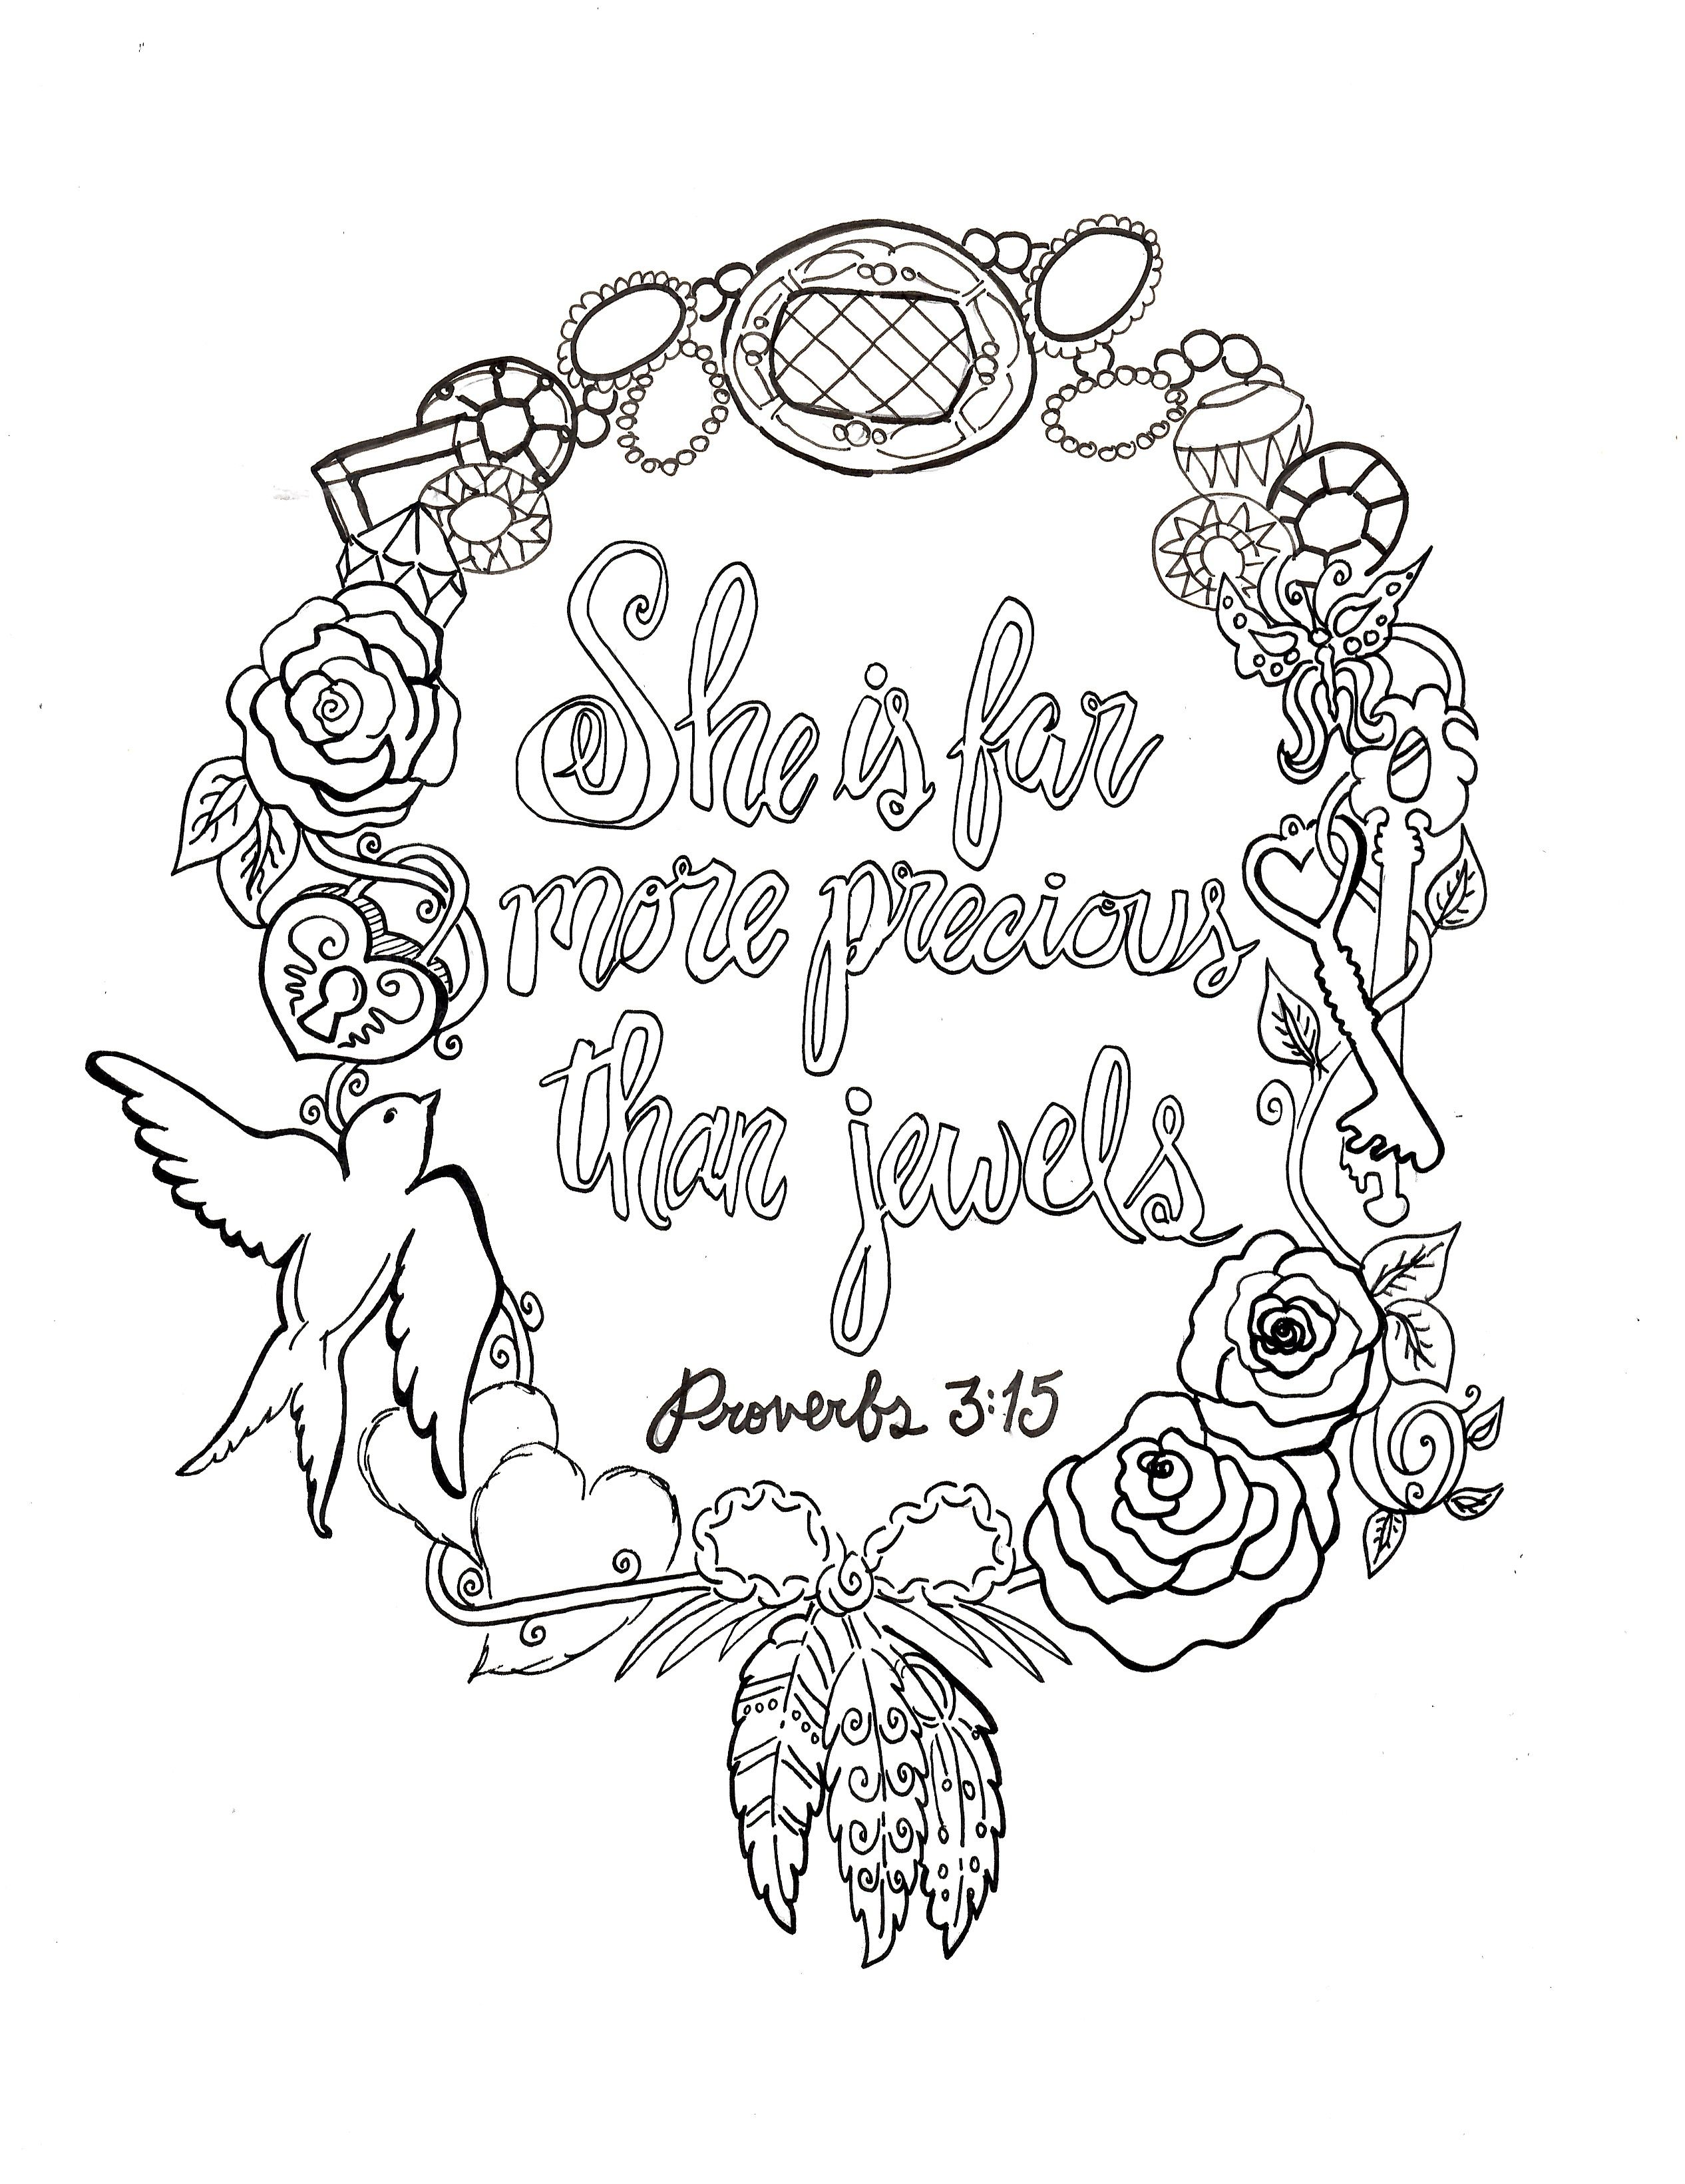 Proverbs 3 15 Printable Free 8x10 Coloring Devotions To